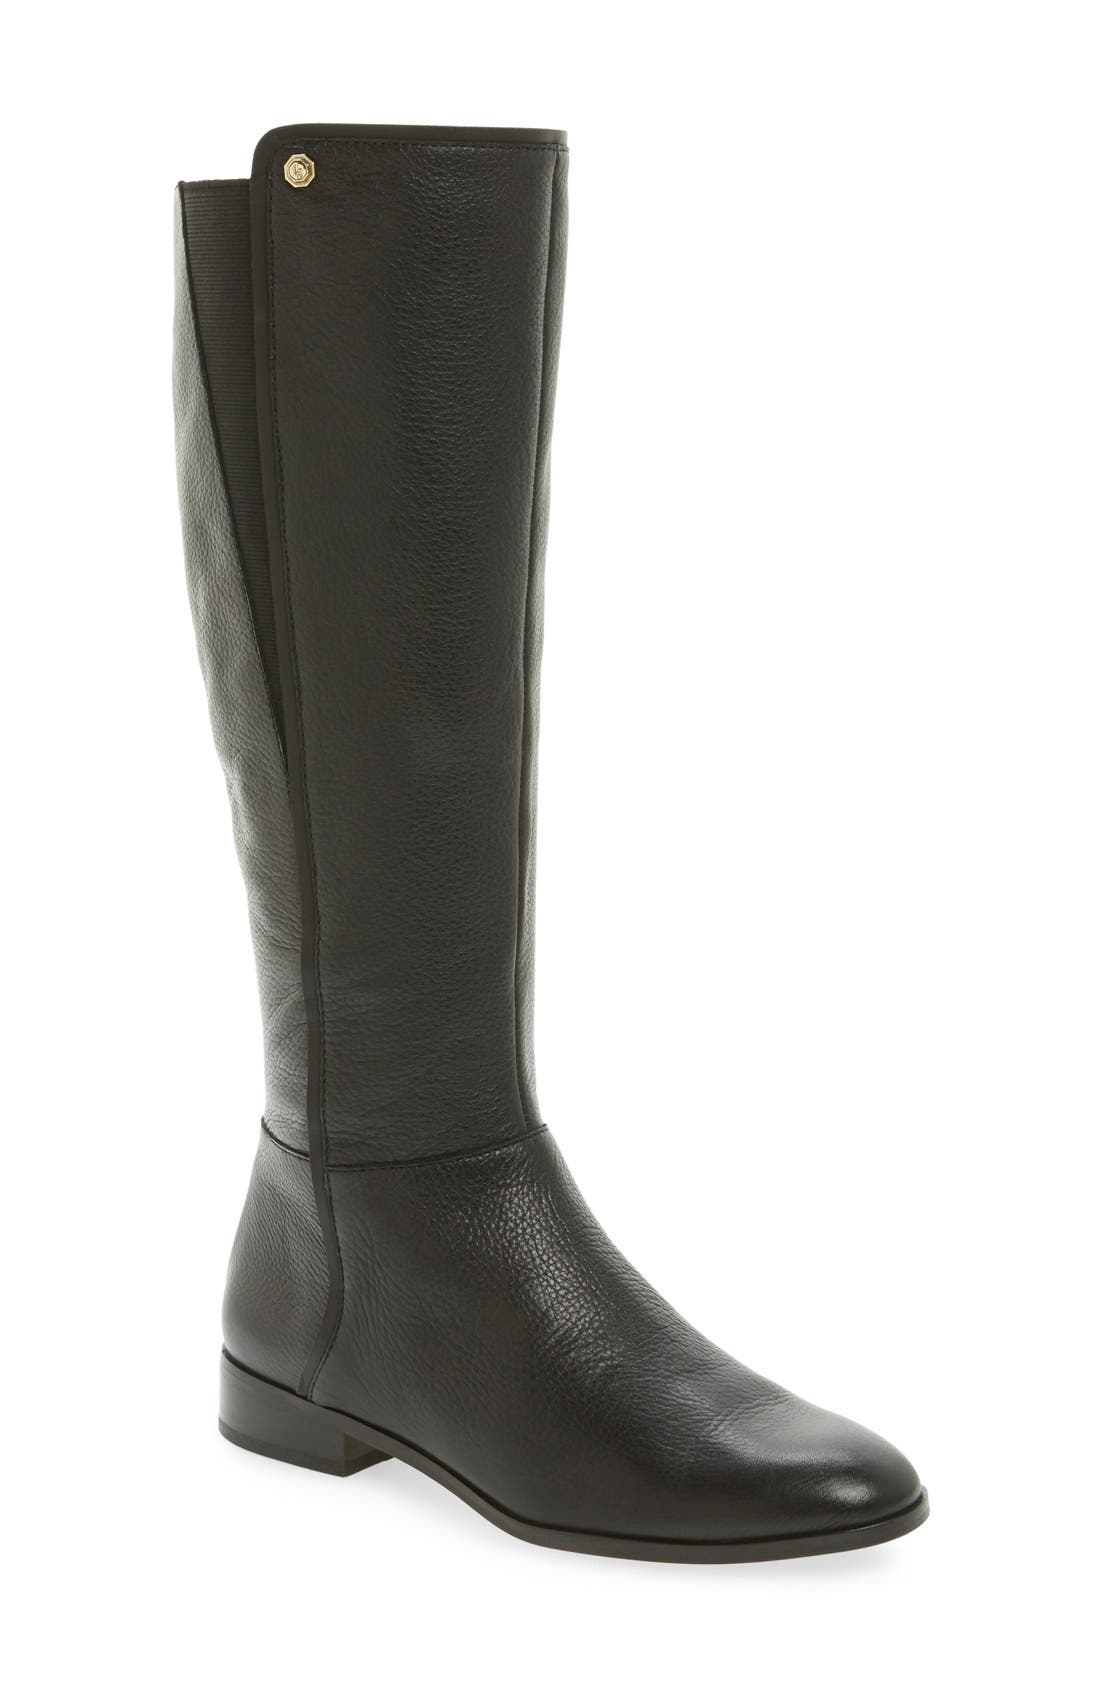 Main Image - Louise et Cie Zaya Knee High Boot (Women)